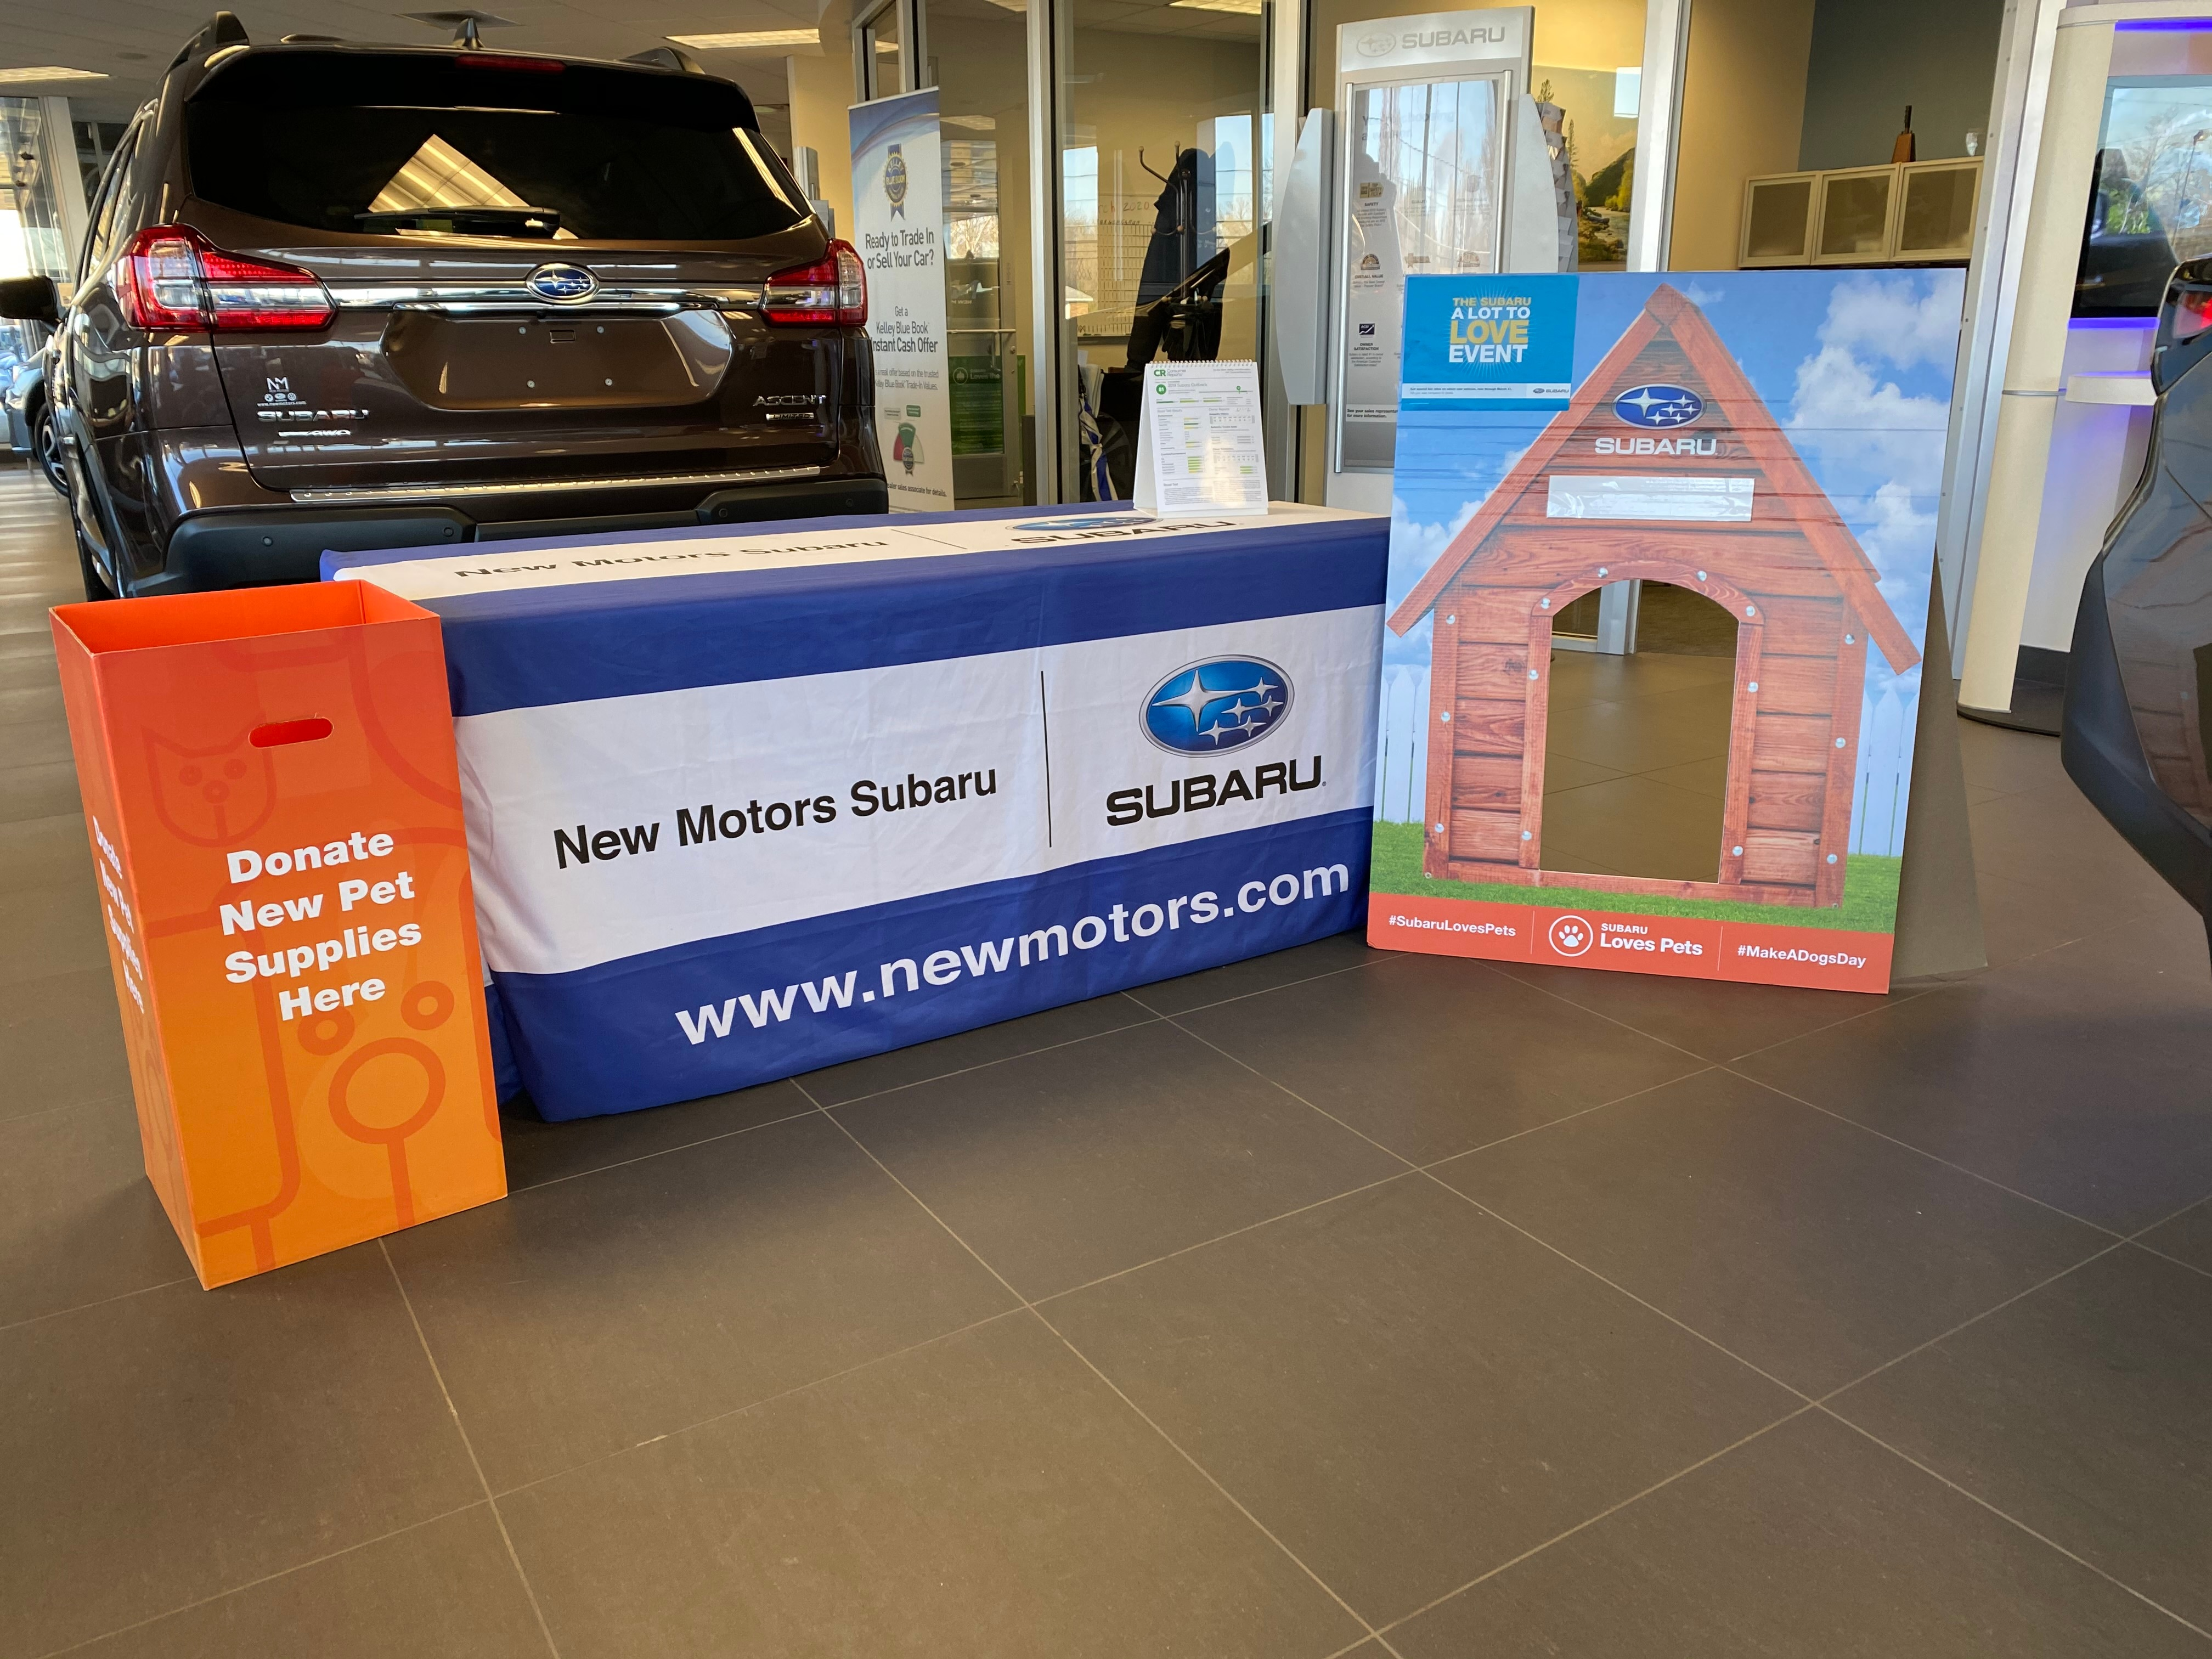 New Motors Subaru Donation Box